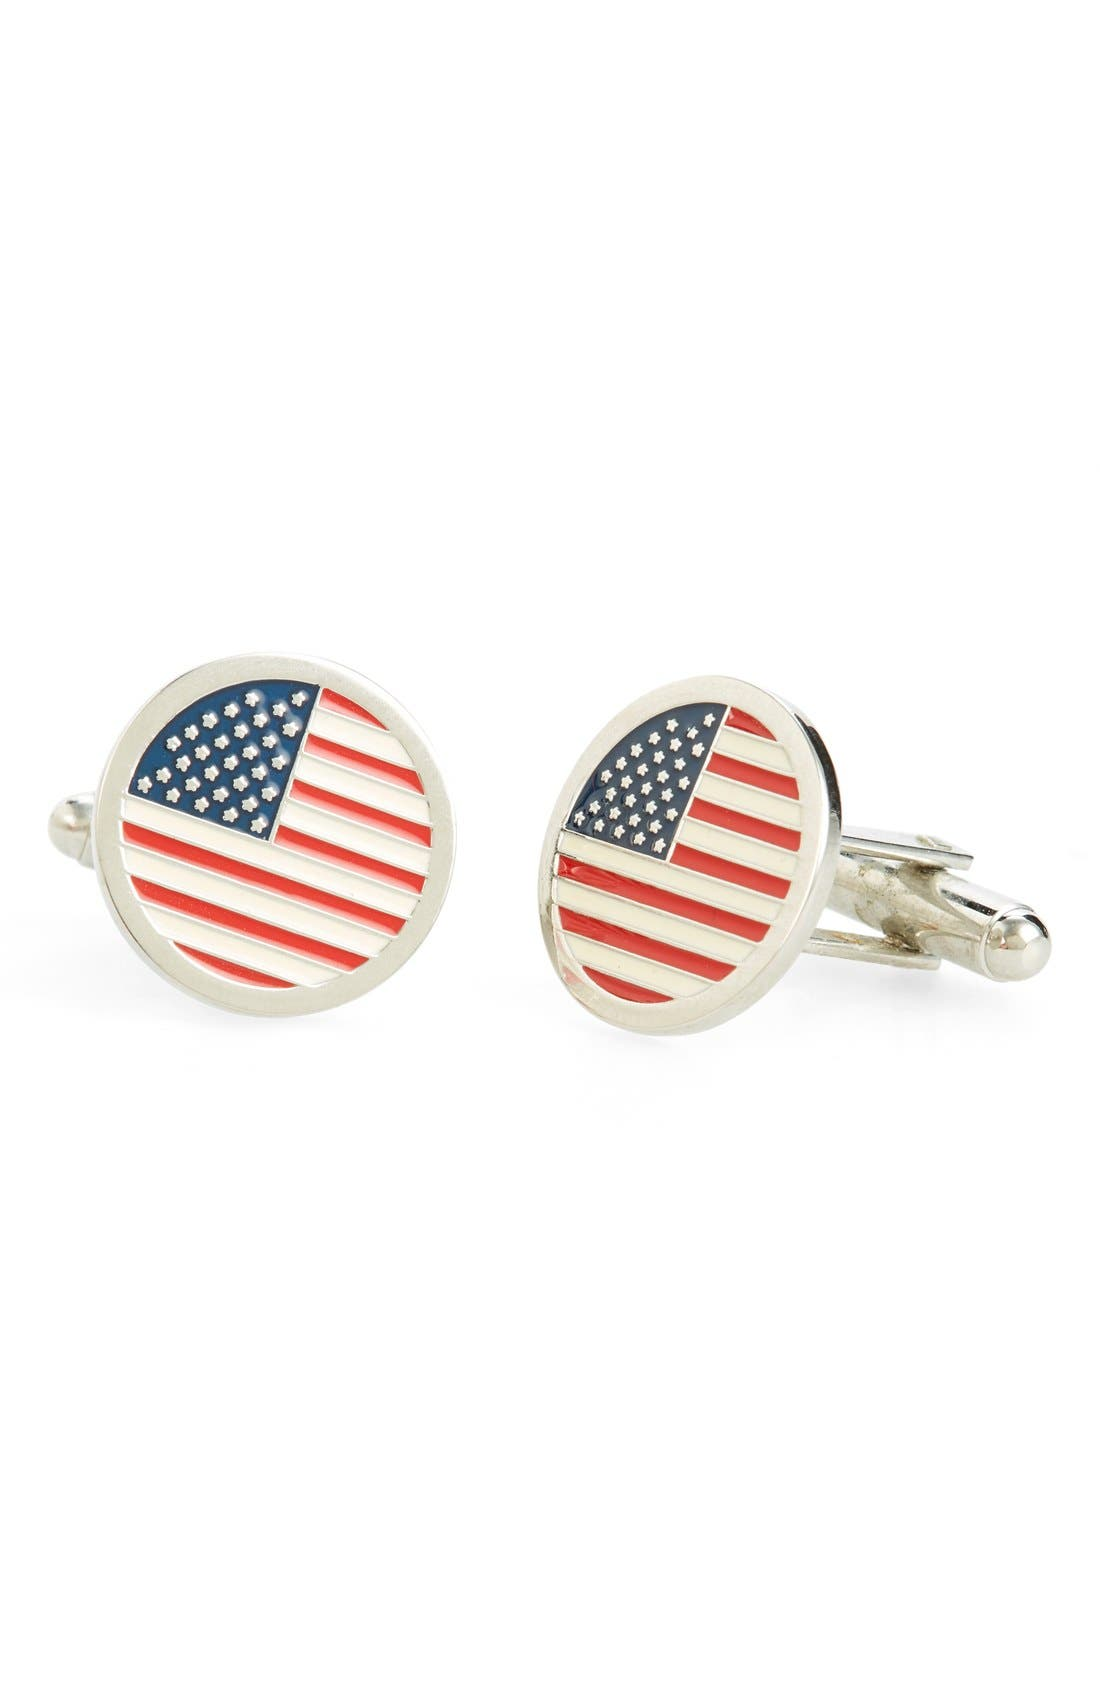 LINK UP Round American Flag Cuff Links